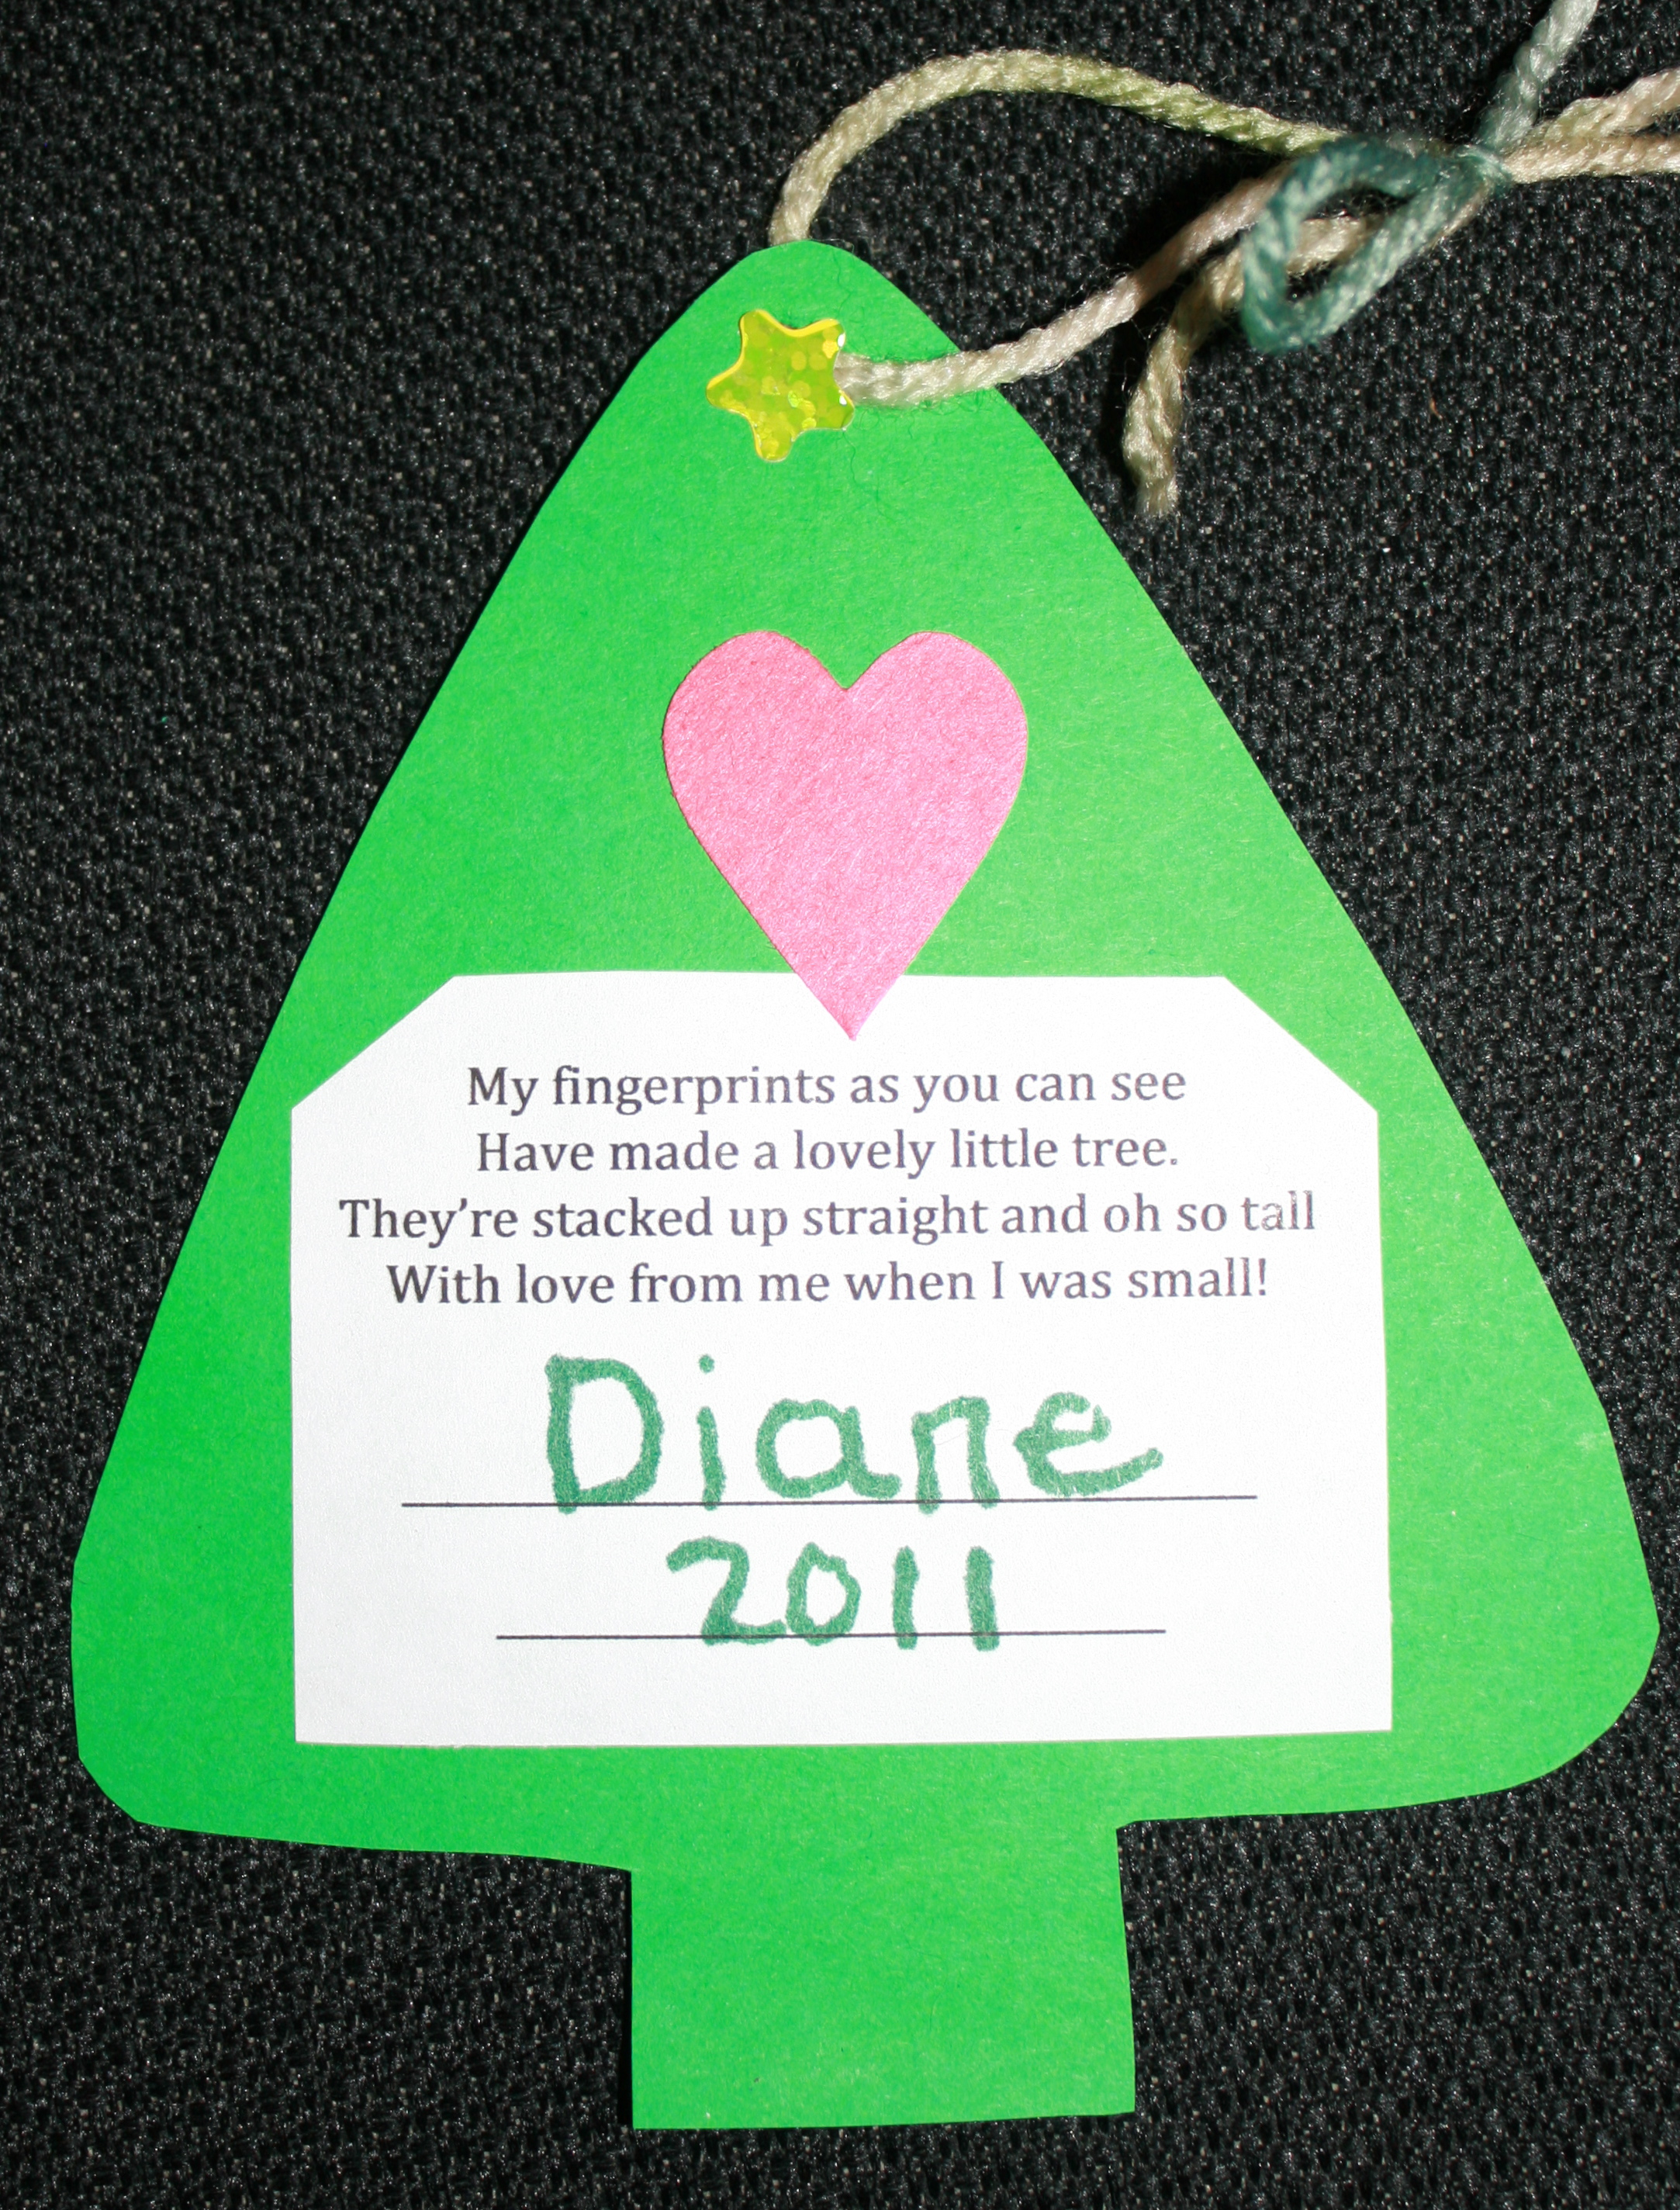 fingerprint Christmas tree ornament, Christmas ornaments, Christmas tree ornaments, Christmas crafts for kids, math ornaments, counting ornaments, paper ornaments, easy ornaments, inexpensive ornaments,